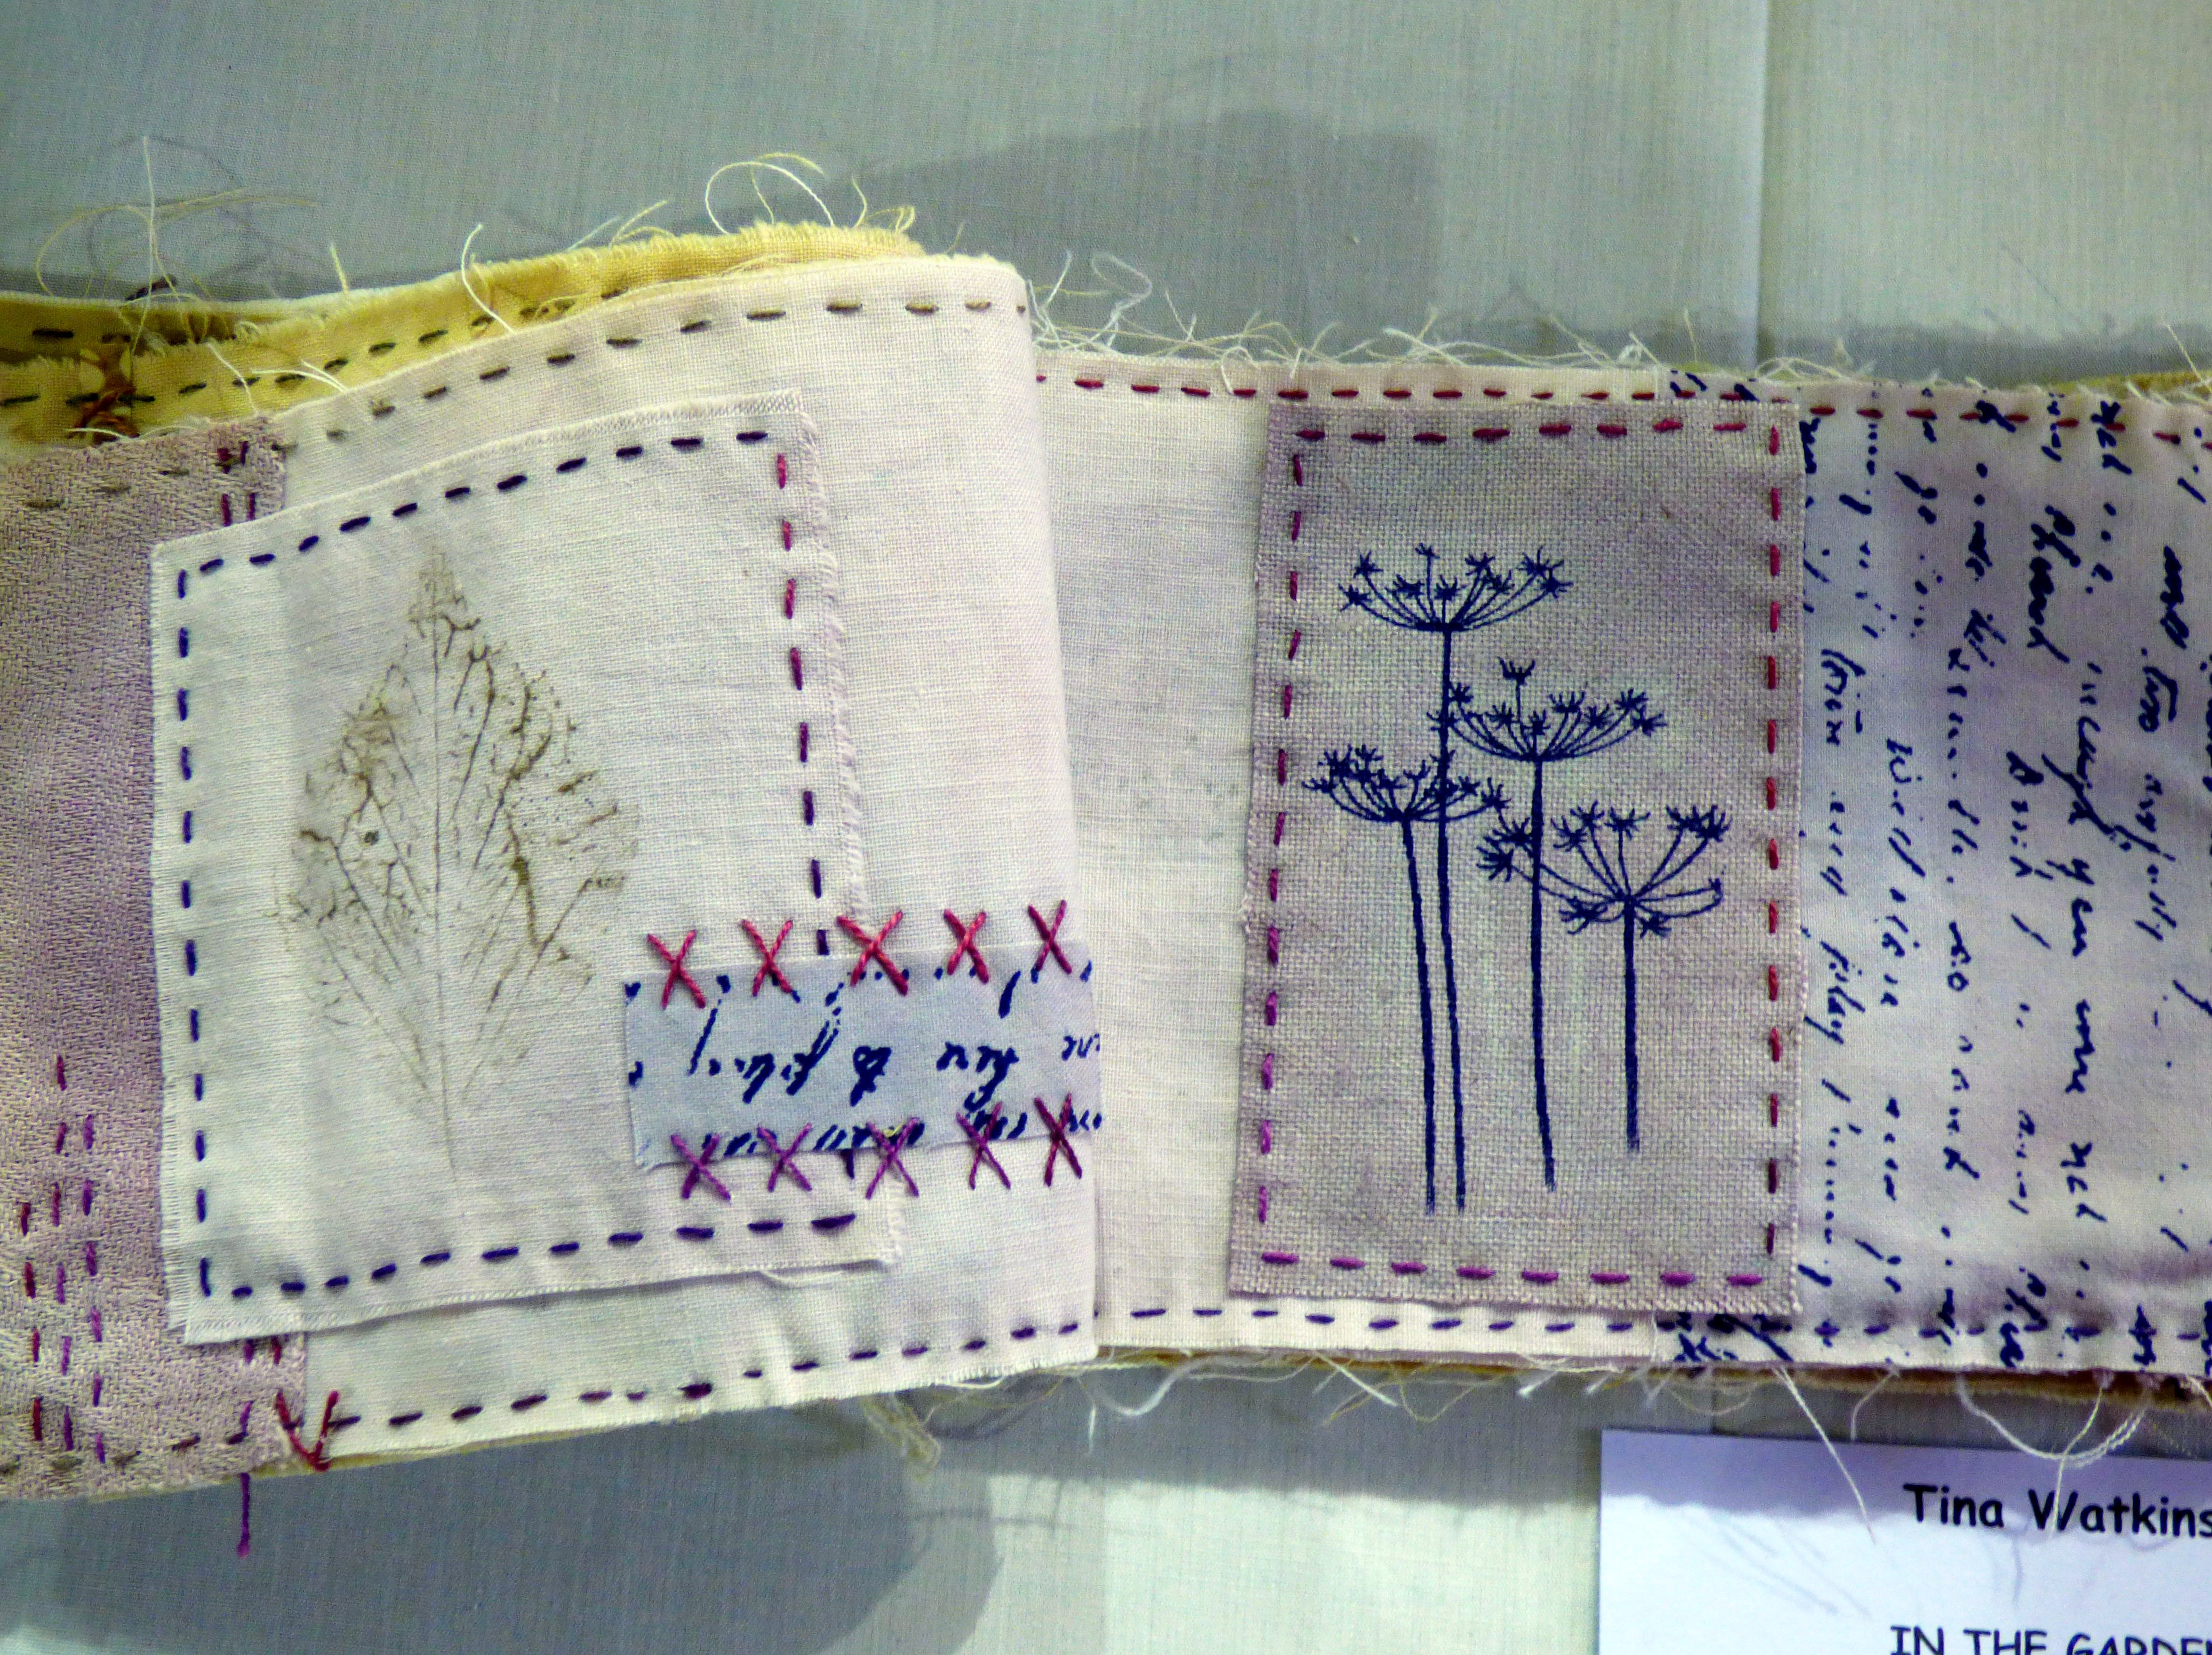 IN THE GARDEN by Tina Watkins, N.Wales EG, experimental textiles